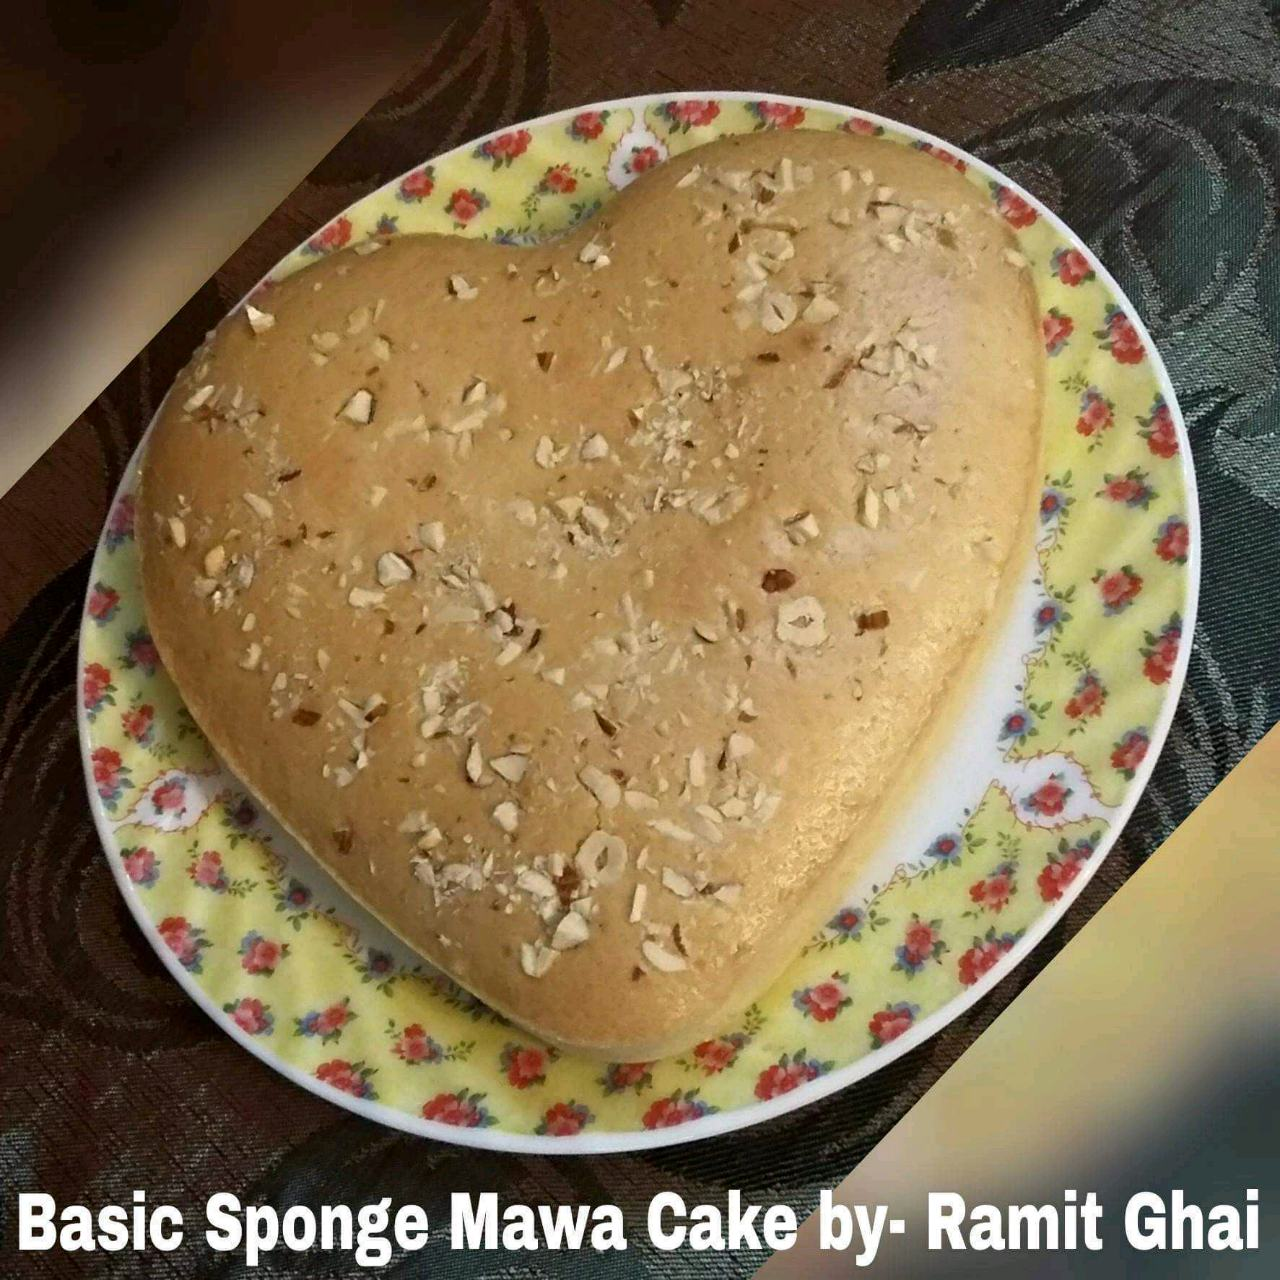 Basic Sponge Mawa Cake....This is so innovative cake...every ingredient here is so rich in itself....kaju powder,milk powder, mawa,milkmaid cashew nut pieces n so all...must try